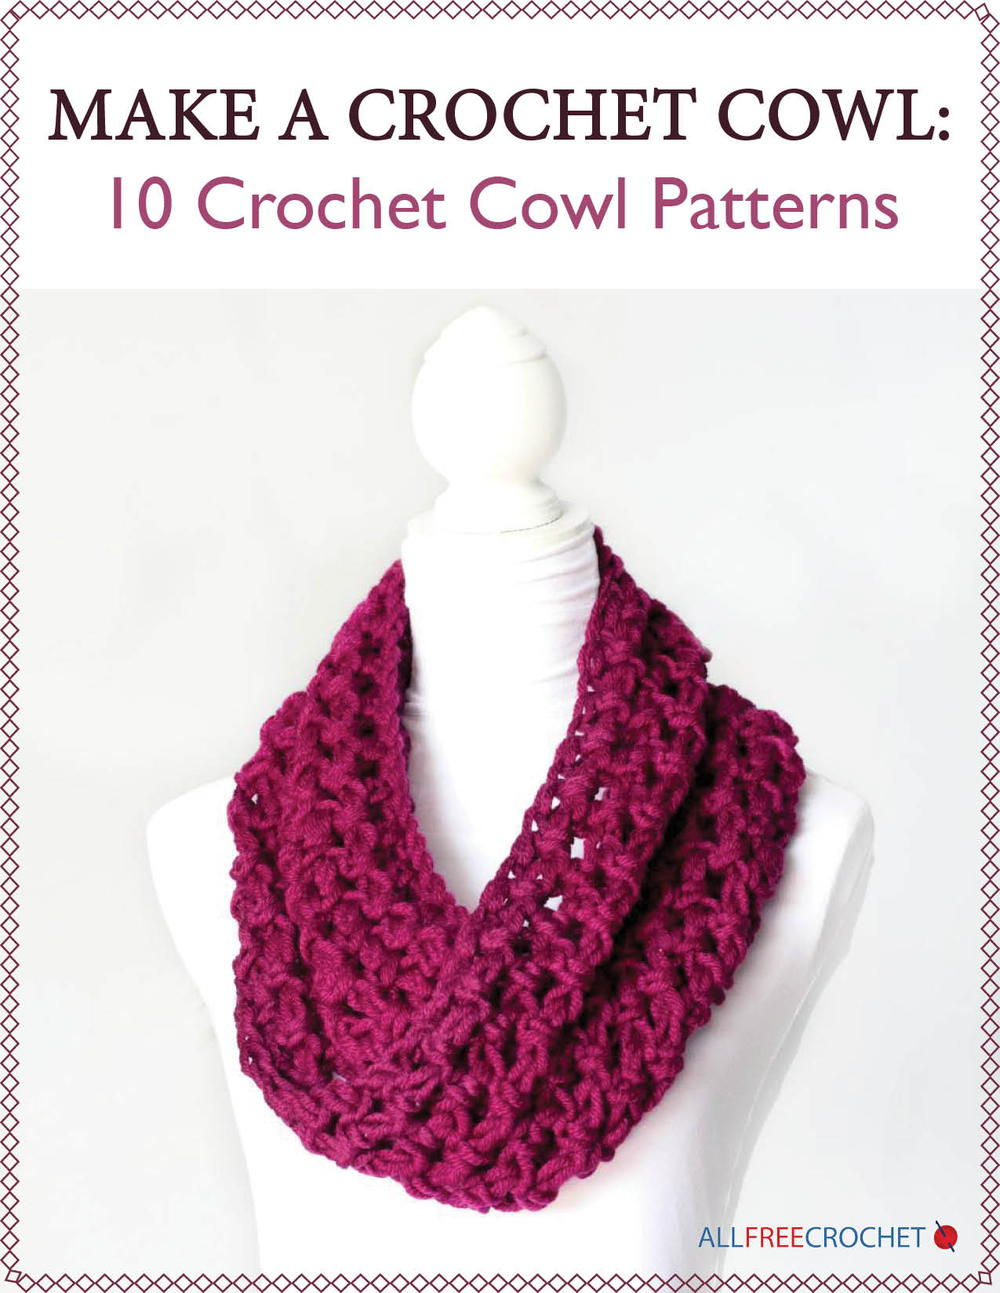 Make a crochet cowl 10 crochet cowl patterns allfreecrochet bankloansurffo Gallery